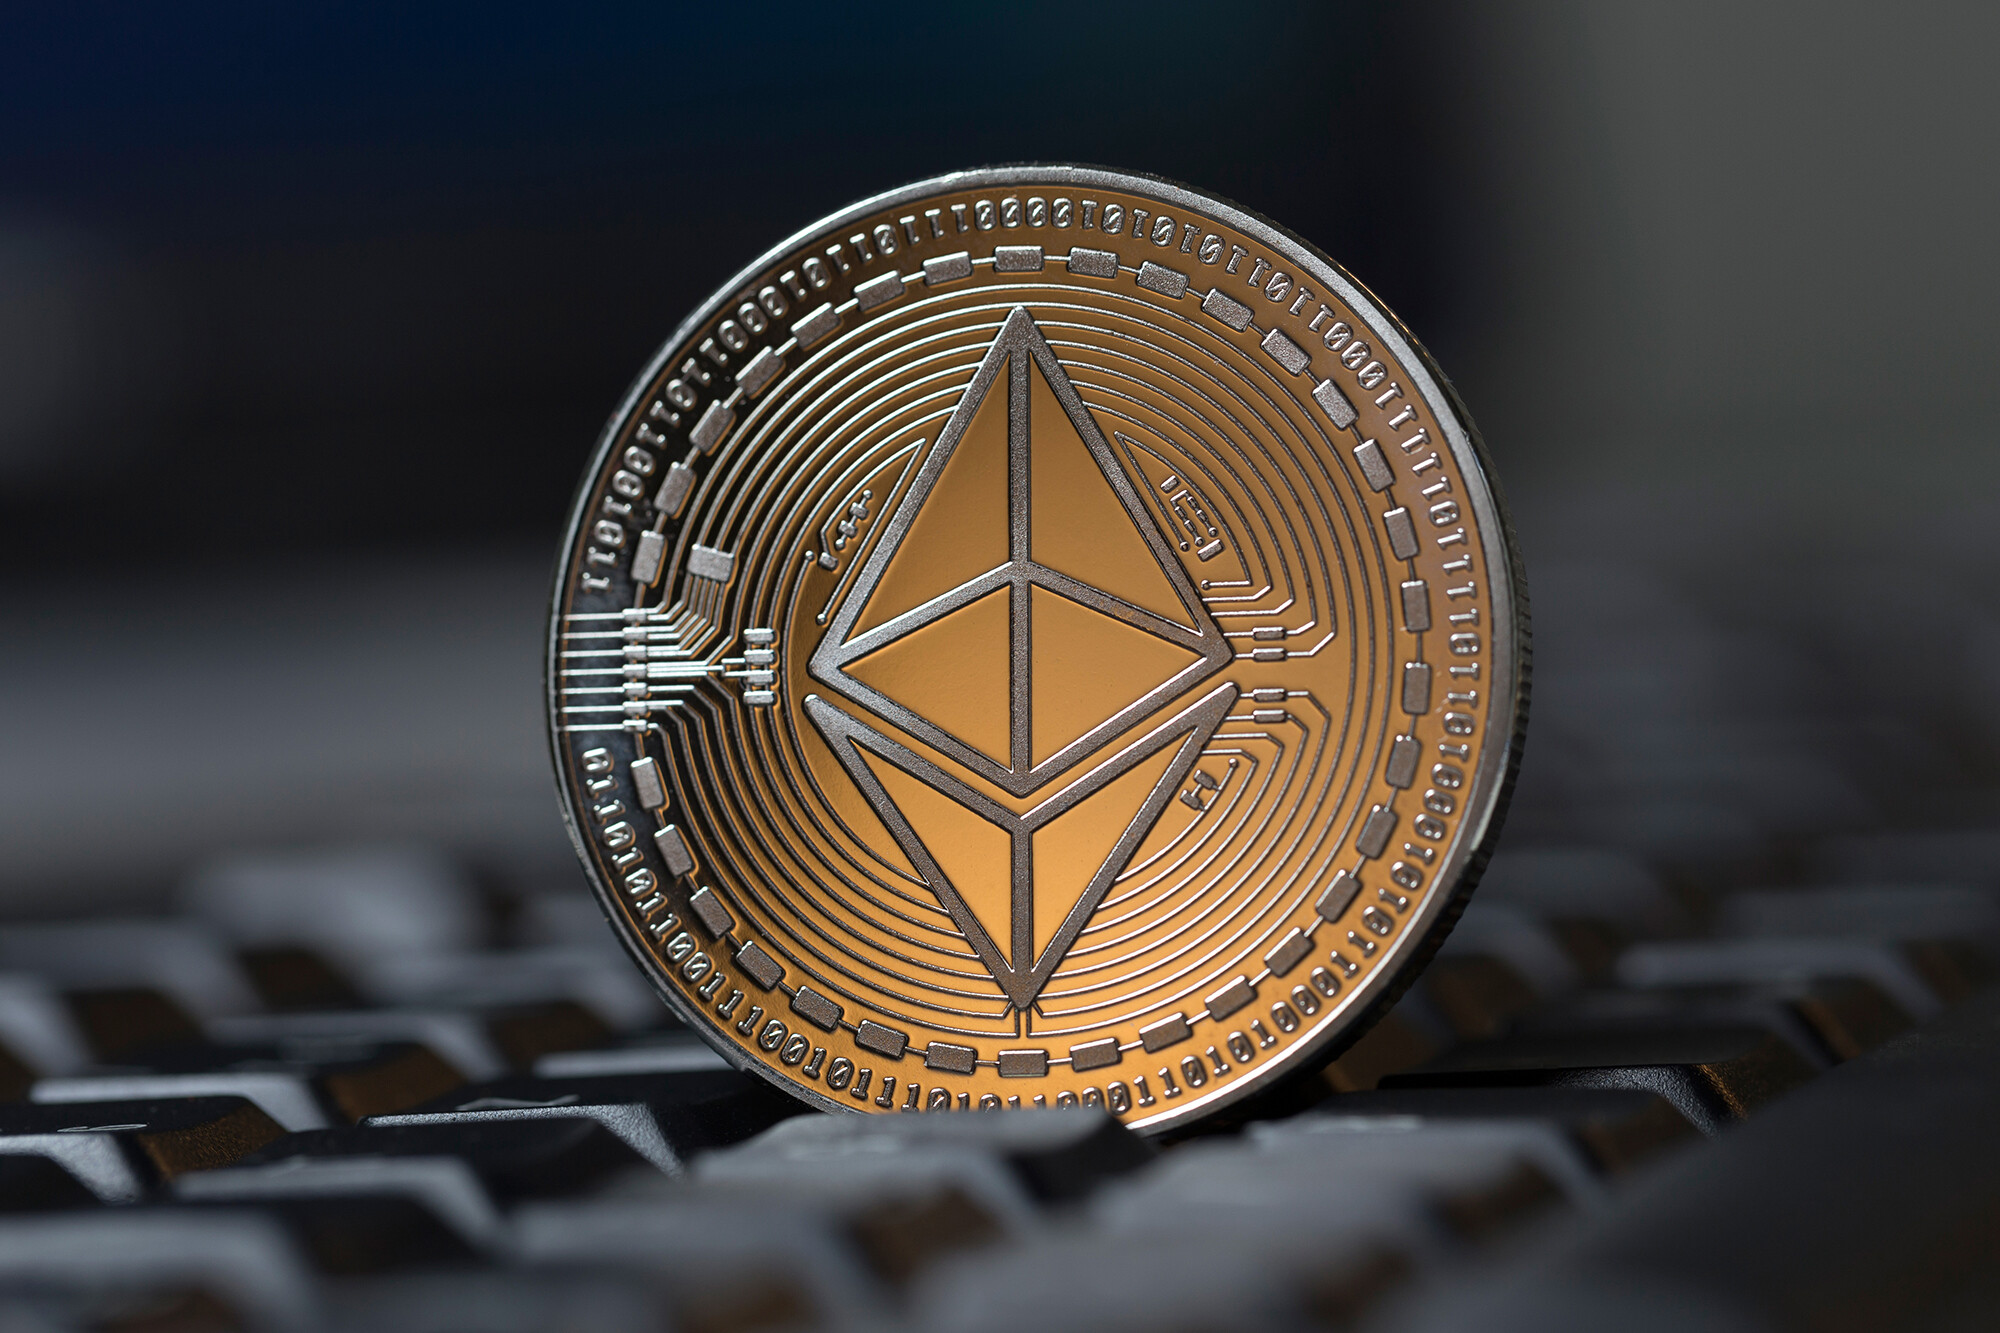 Ethan Allen changes stock symbol from ETH to avoid confusion with ethereum